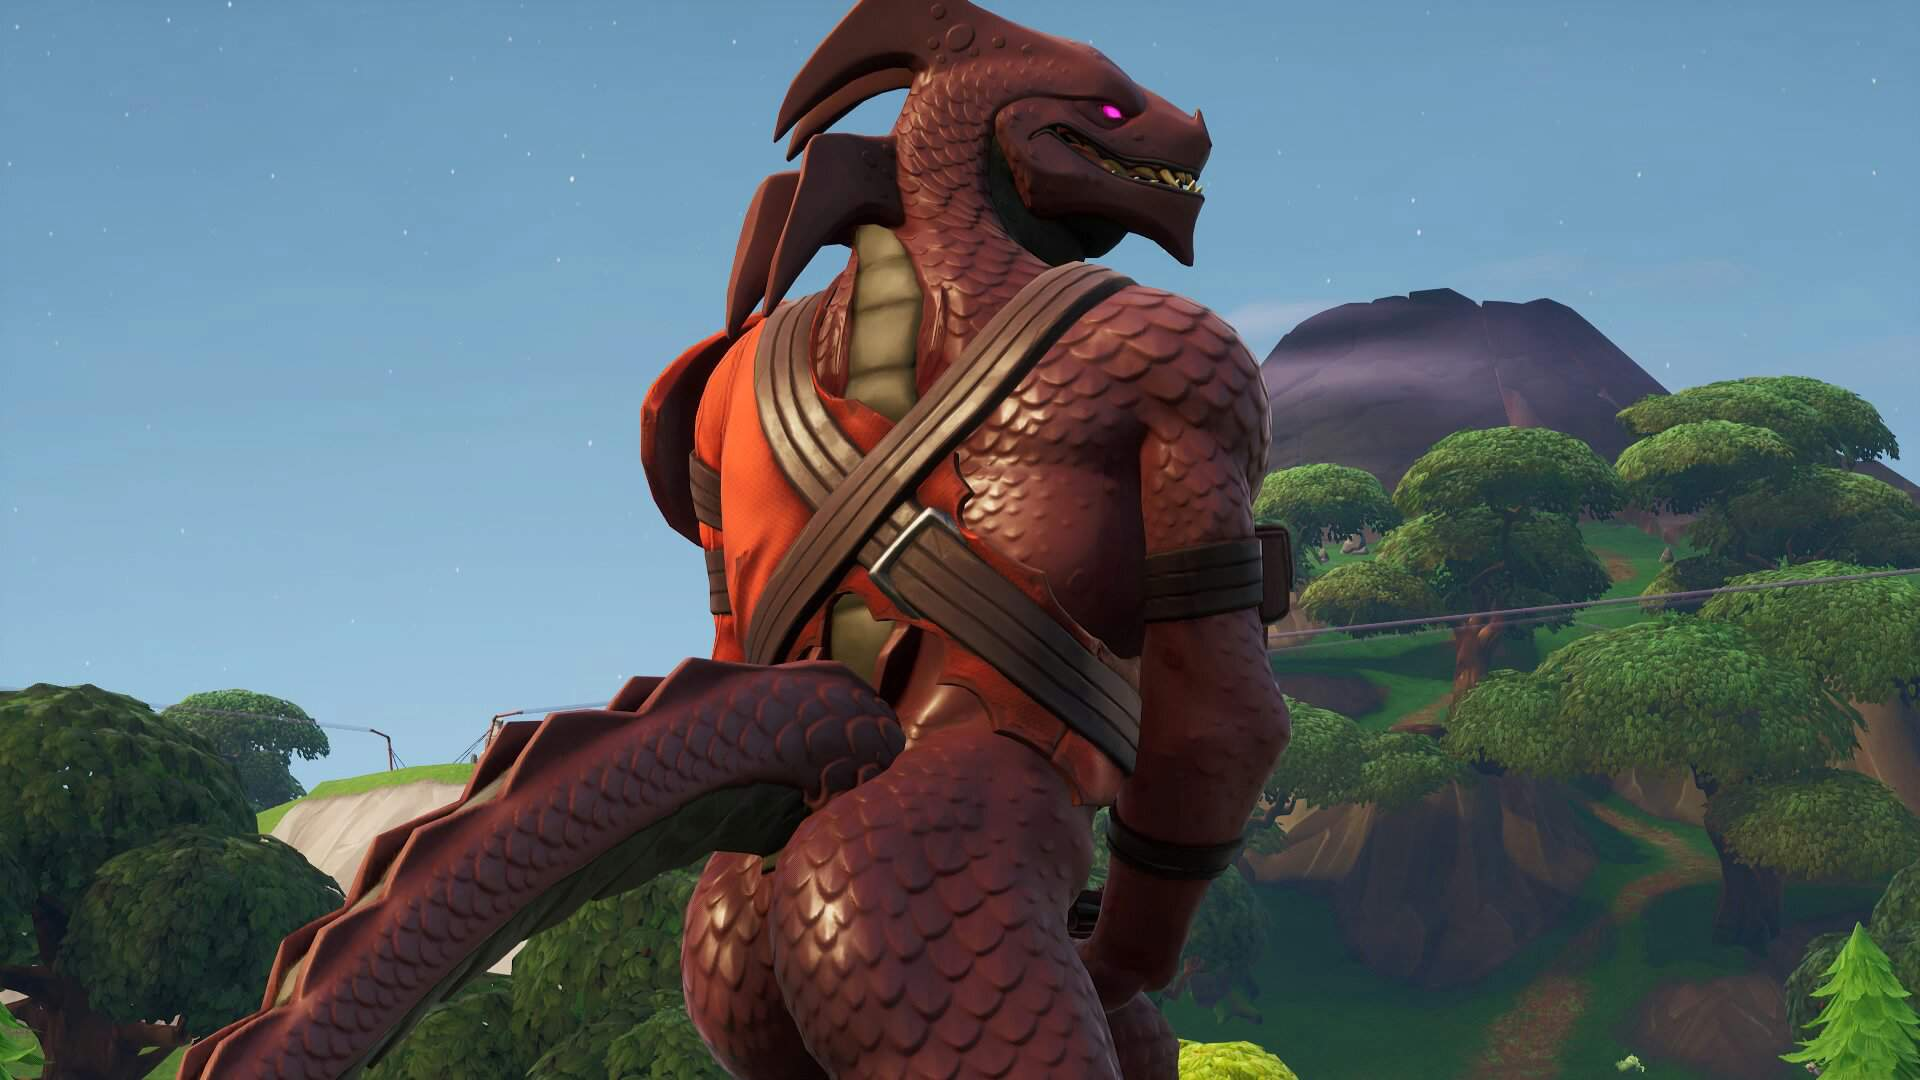 Who Have The Most Thicc In Fortnite Is Hybrid A Thicc Skin Fortnite Battle Royale Armory Amino